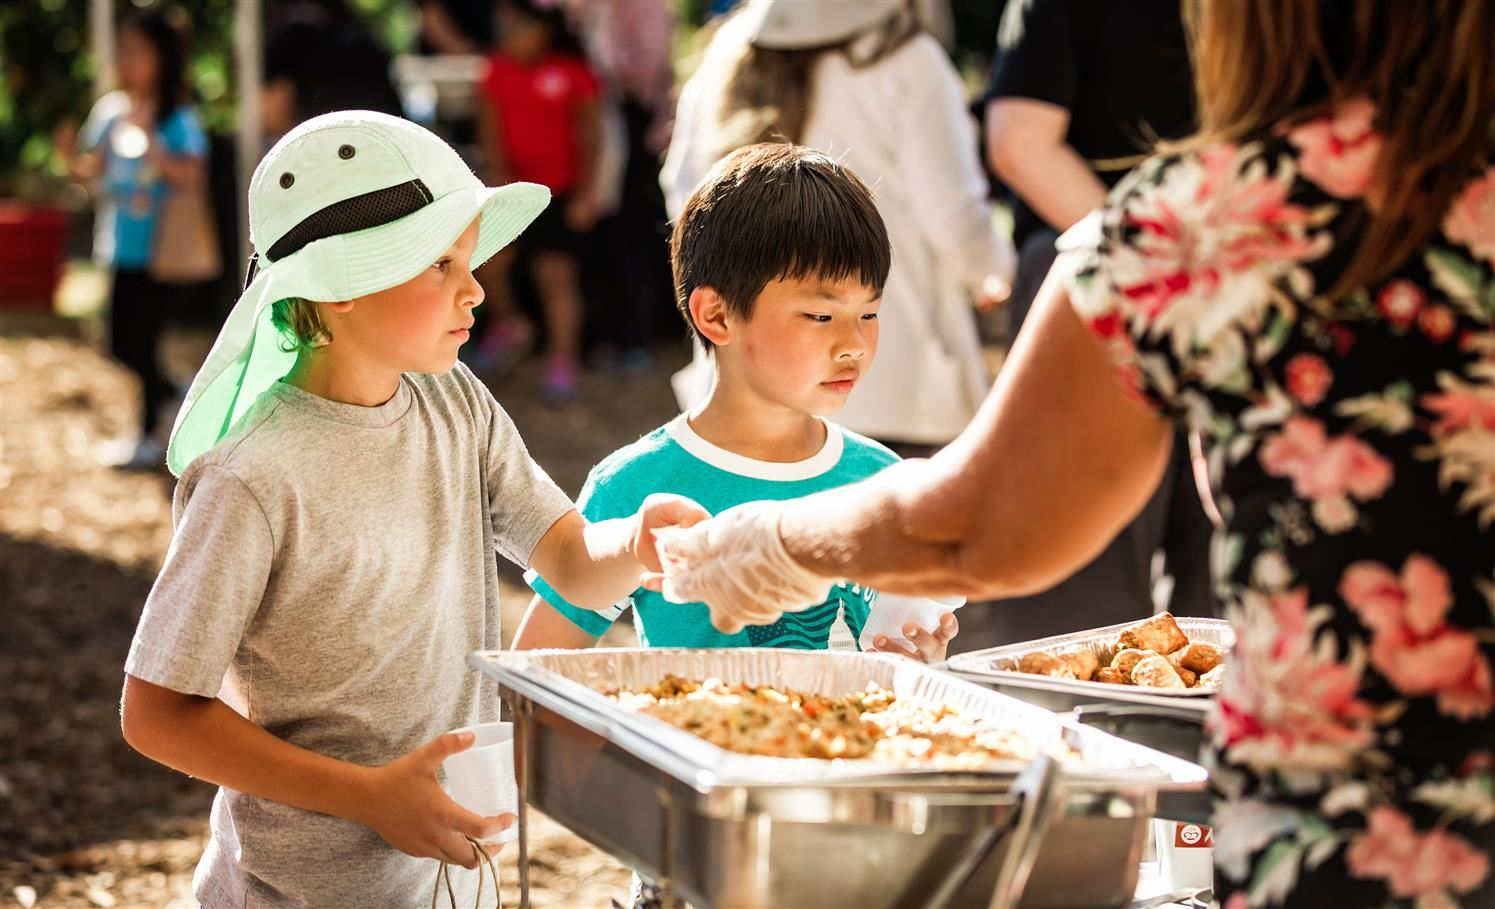 Children getting served food at tasting event